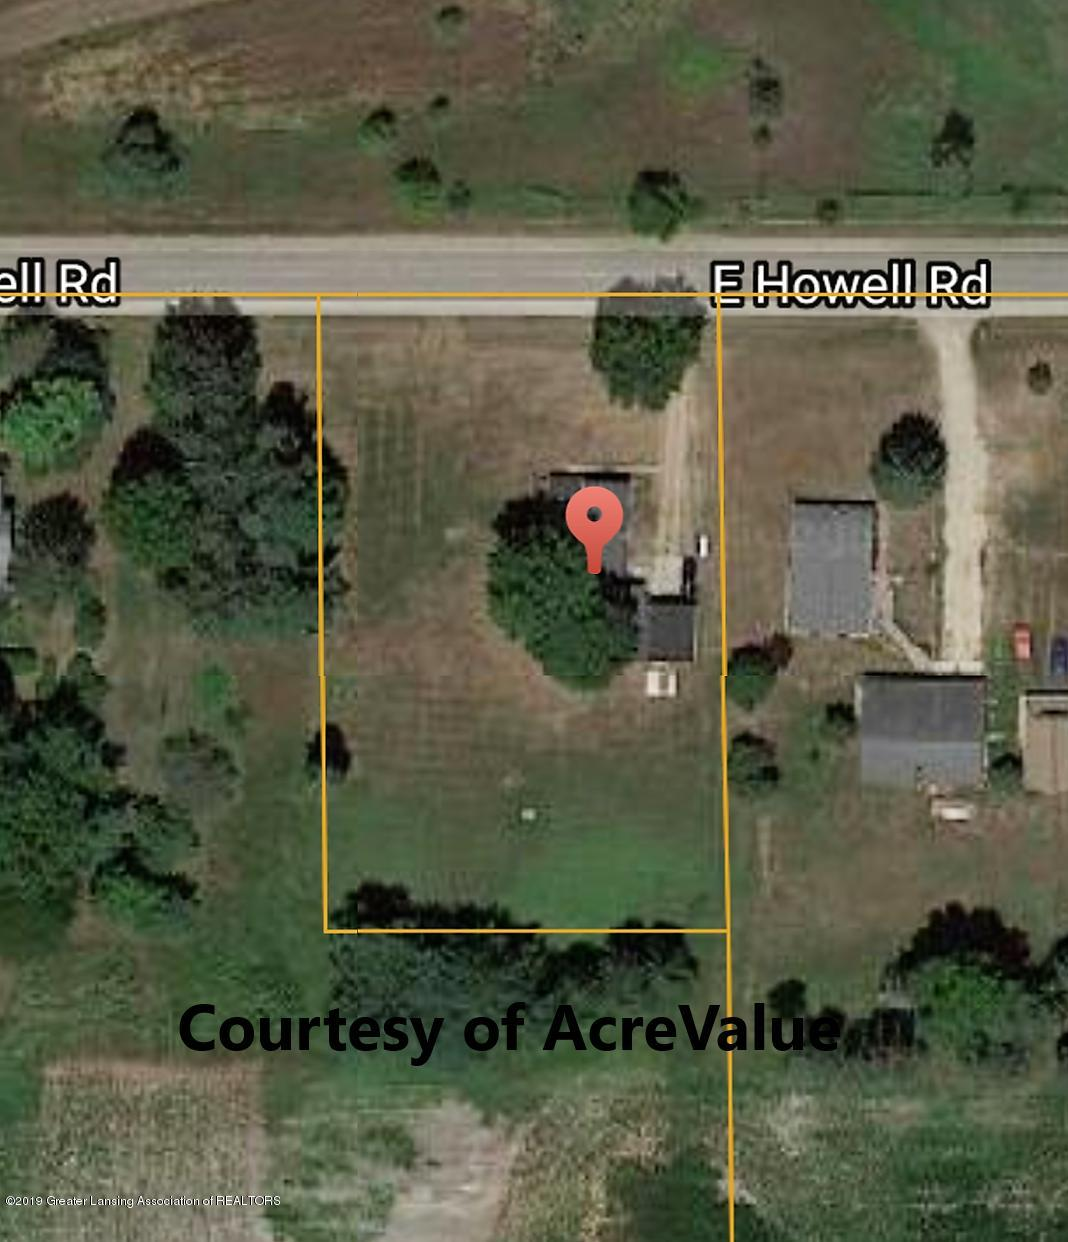 2240 E Howell Rd - Aerial View - 23